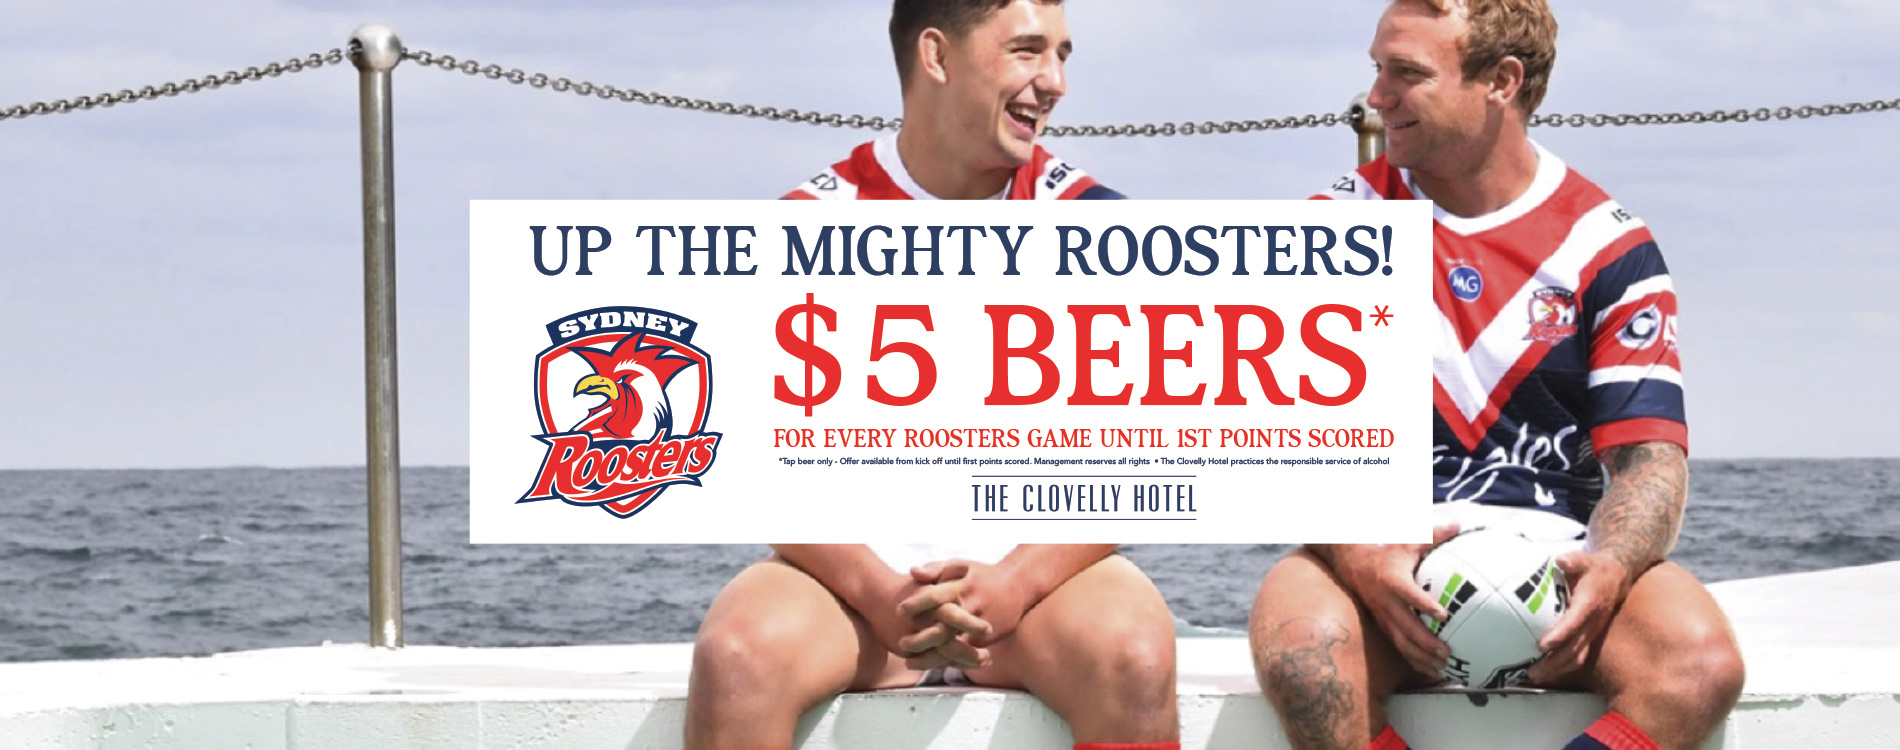 $5 beers until first points are scored at Roosers matches